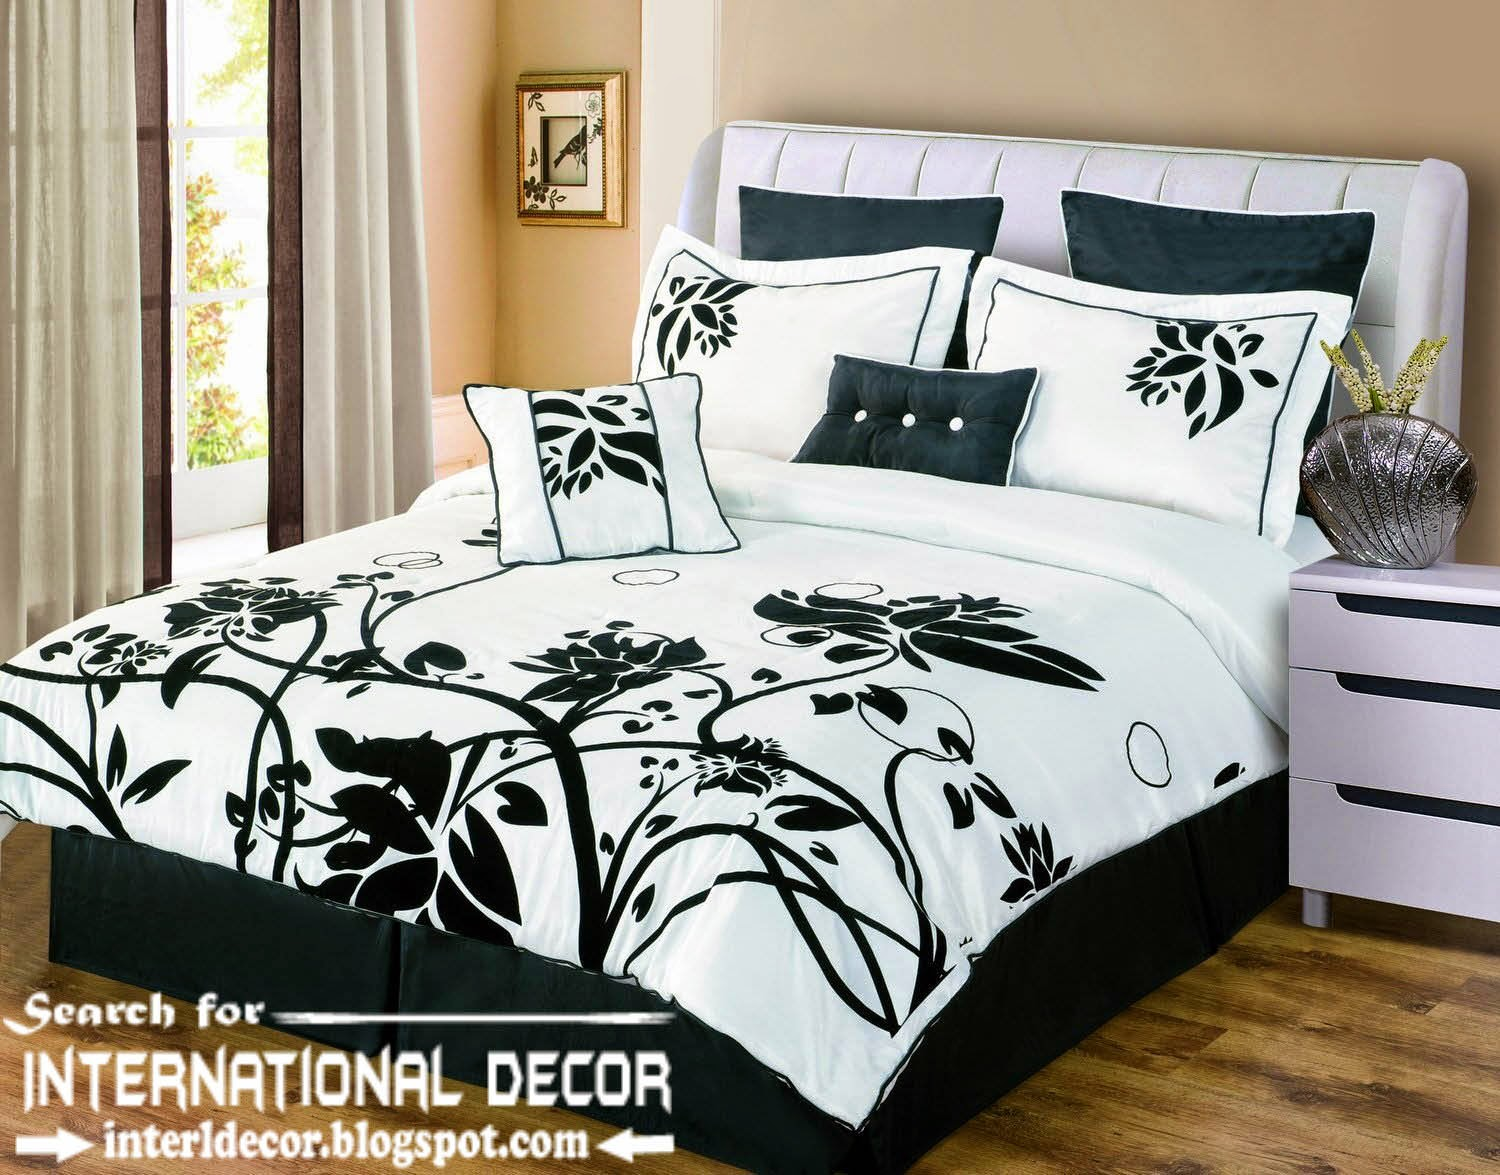 Italian bedspreads, Italian bedding sets, black and white bedspreads and bedding sets